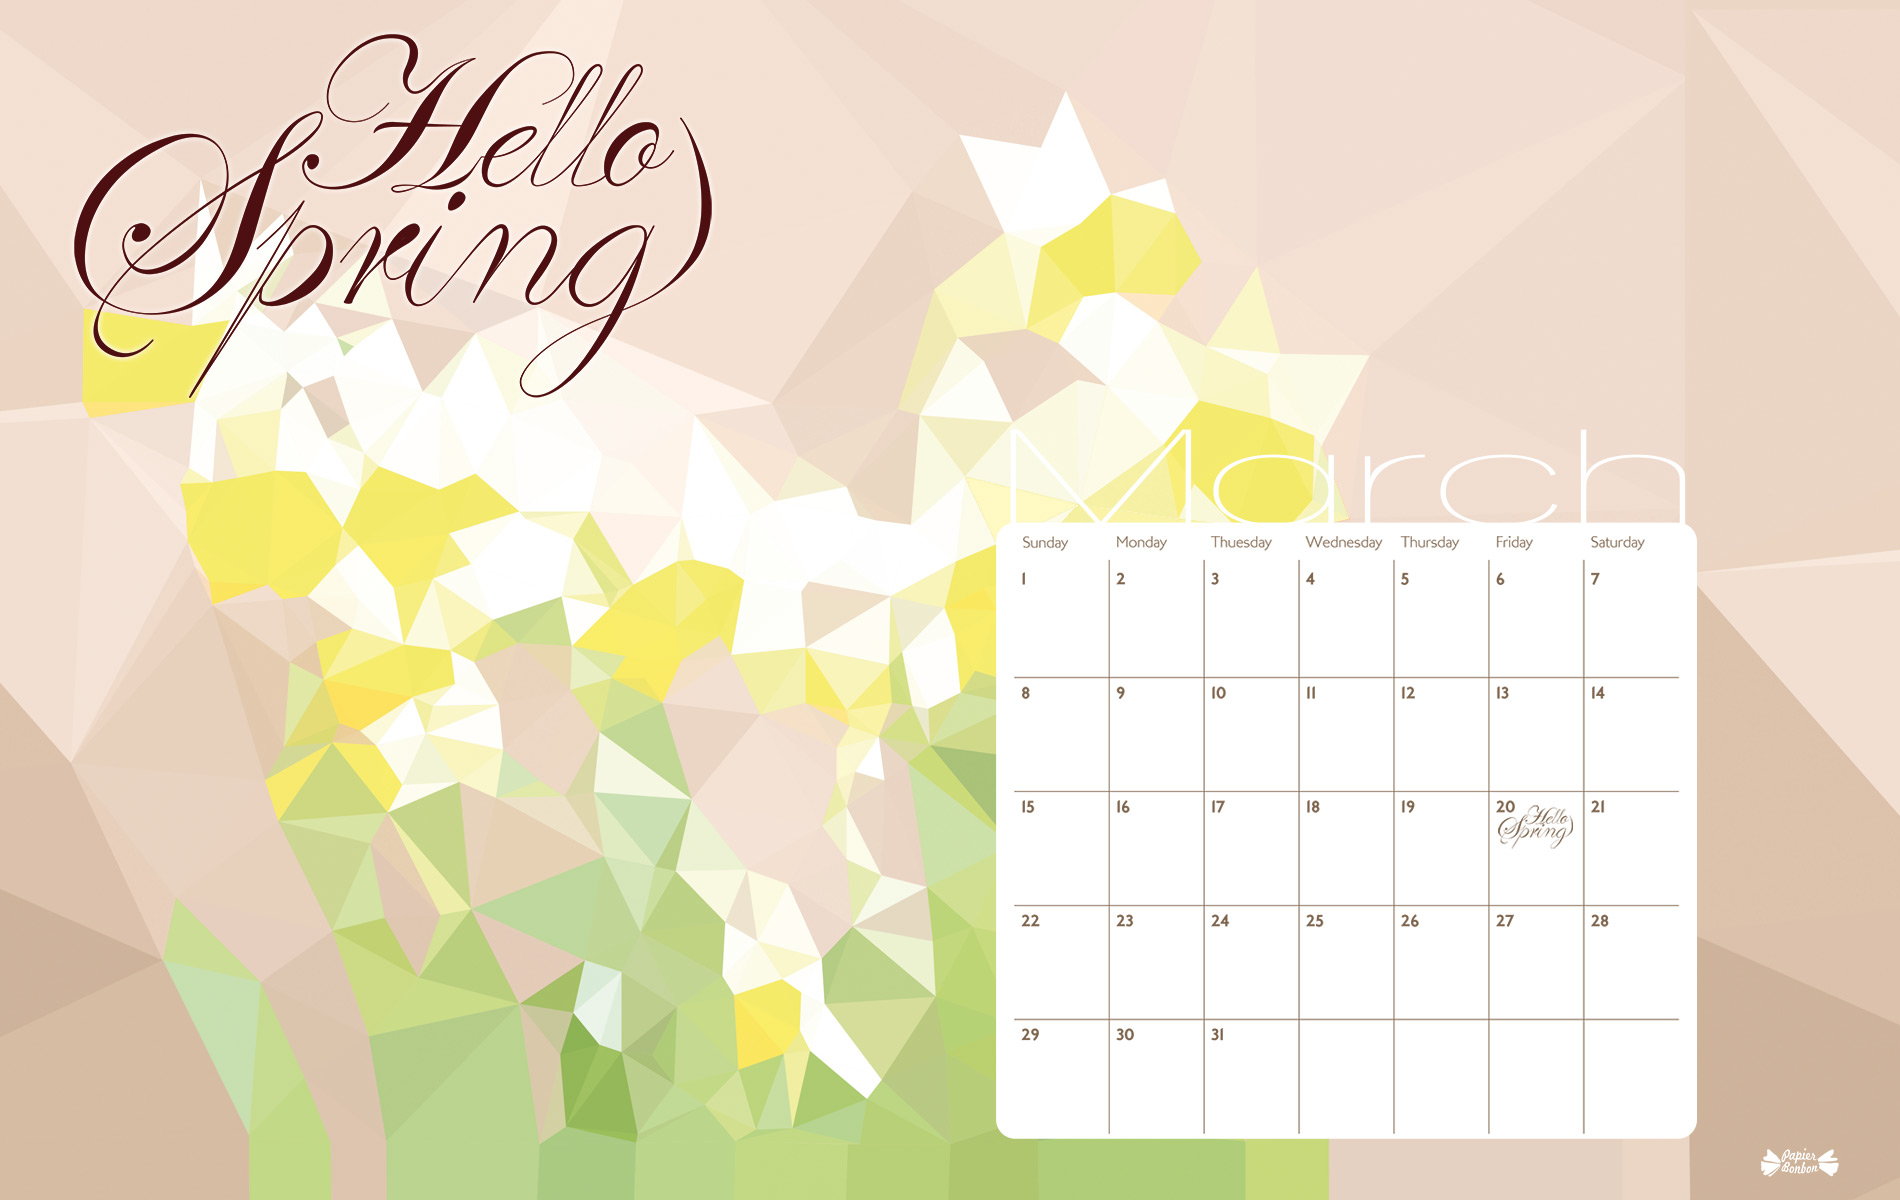 Calendar Desktop Wallpaper March : March calendar printable hello spring papier bonbon